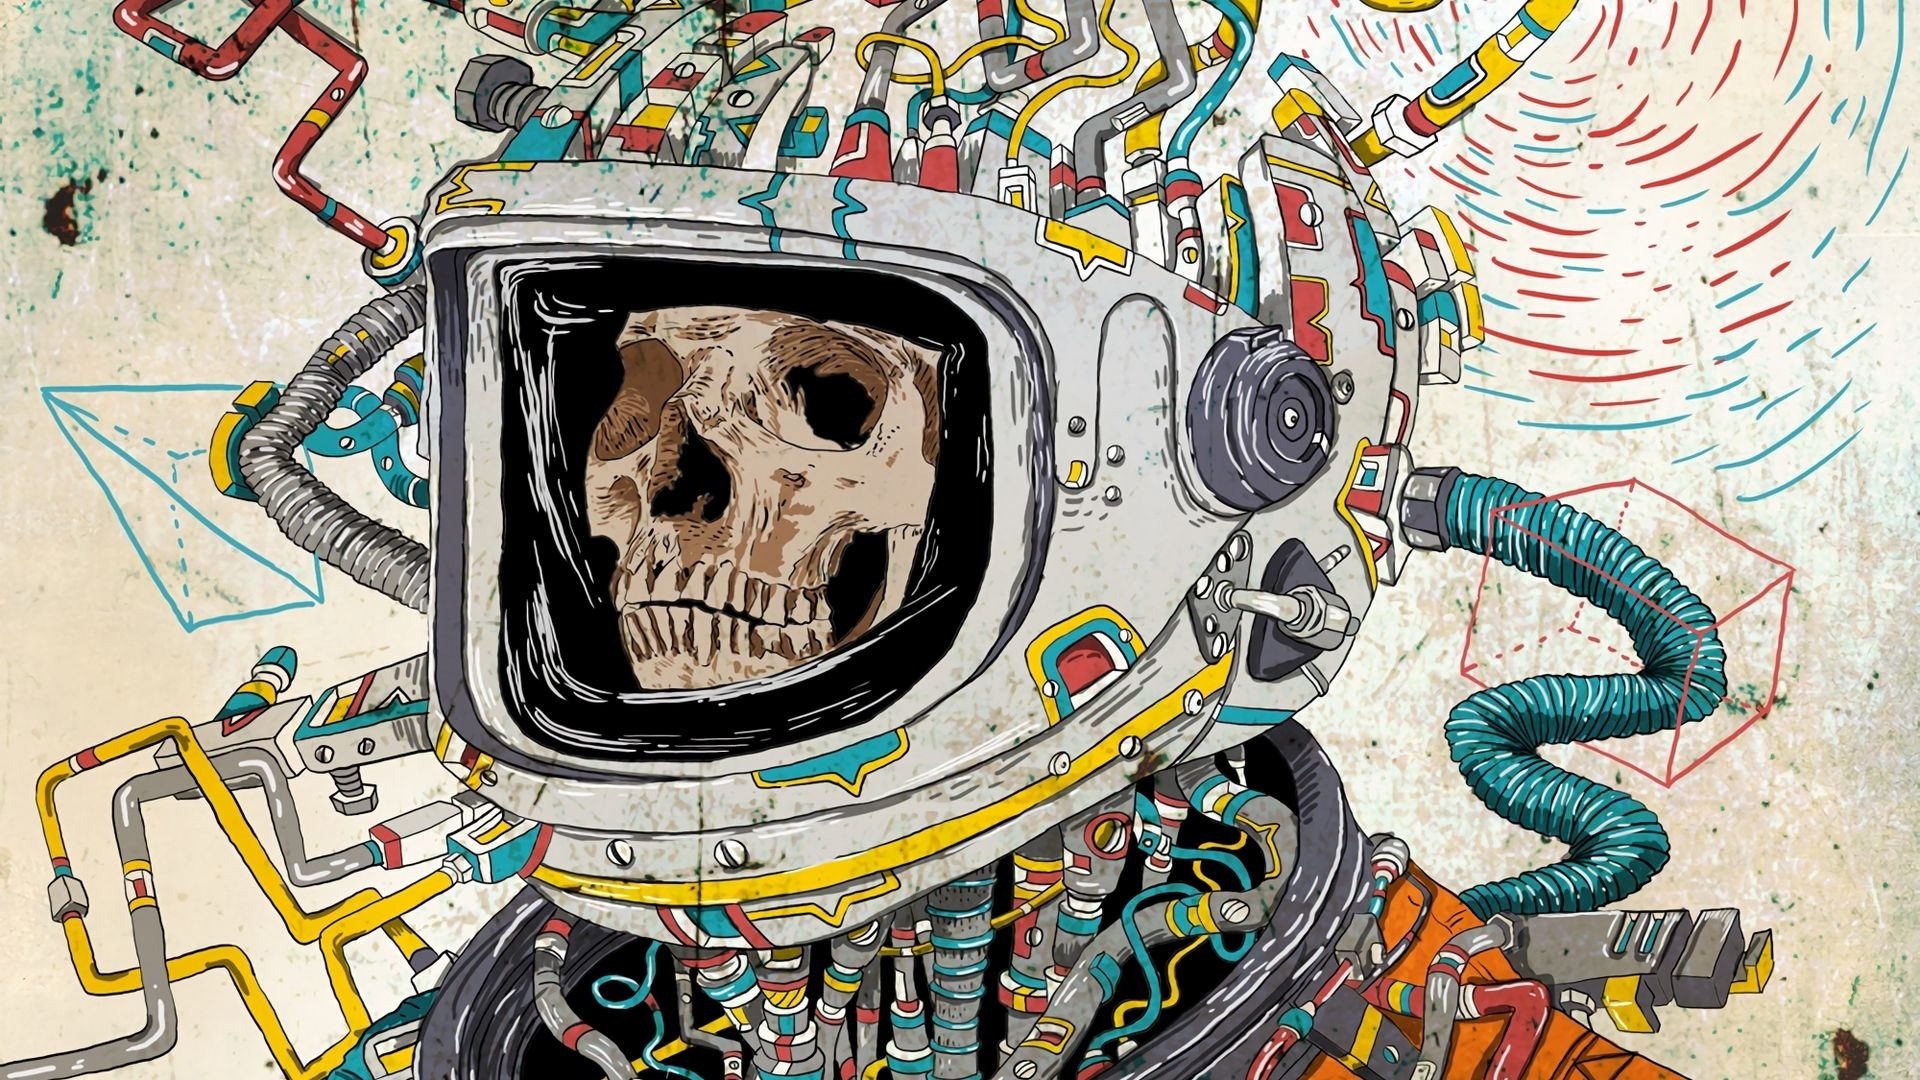 Astronaut Art wallpaper for pc